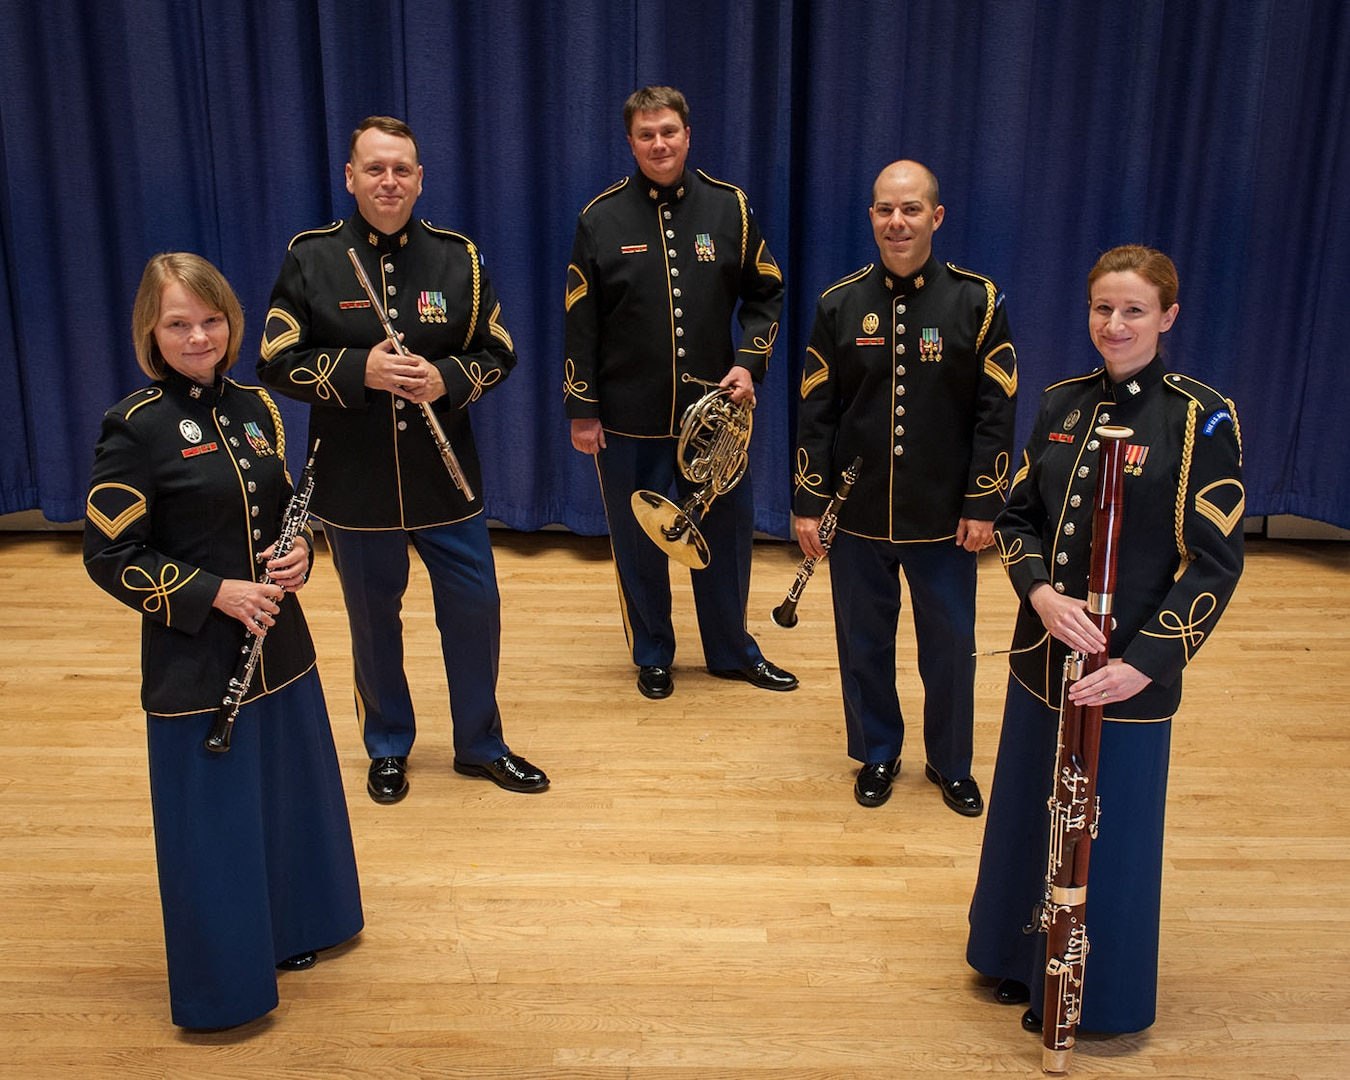 Members of the U.S. Army Band Woodwind Quintet, one of the Army's premiere chamber ensembles.